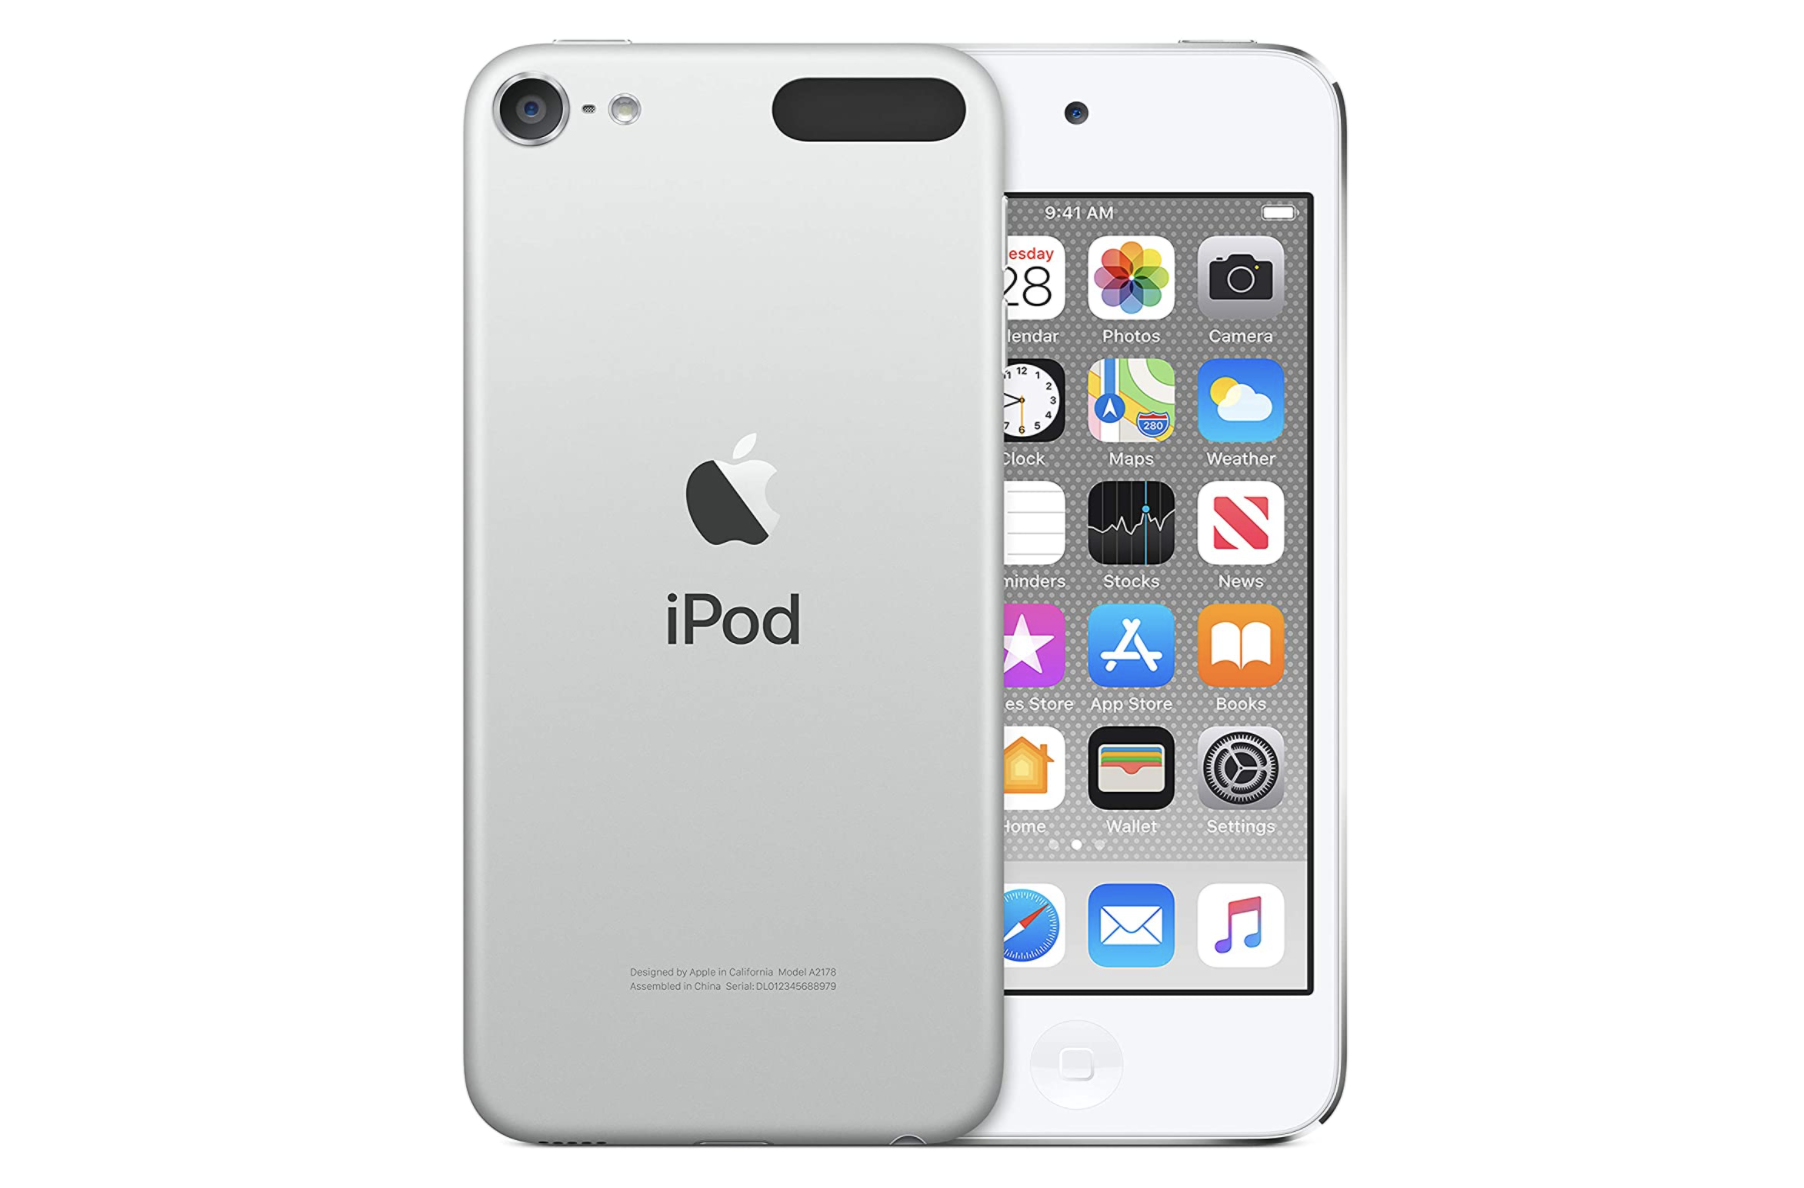 iPod Touch Black Friday deals are now live